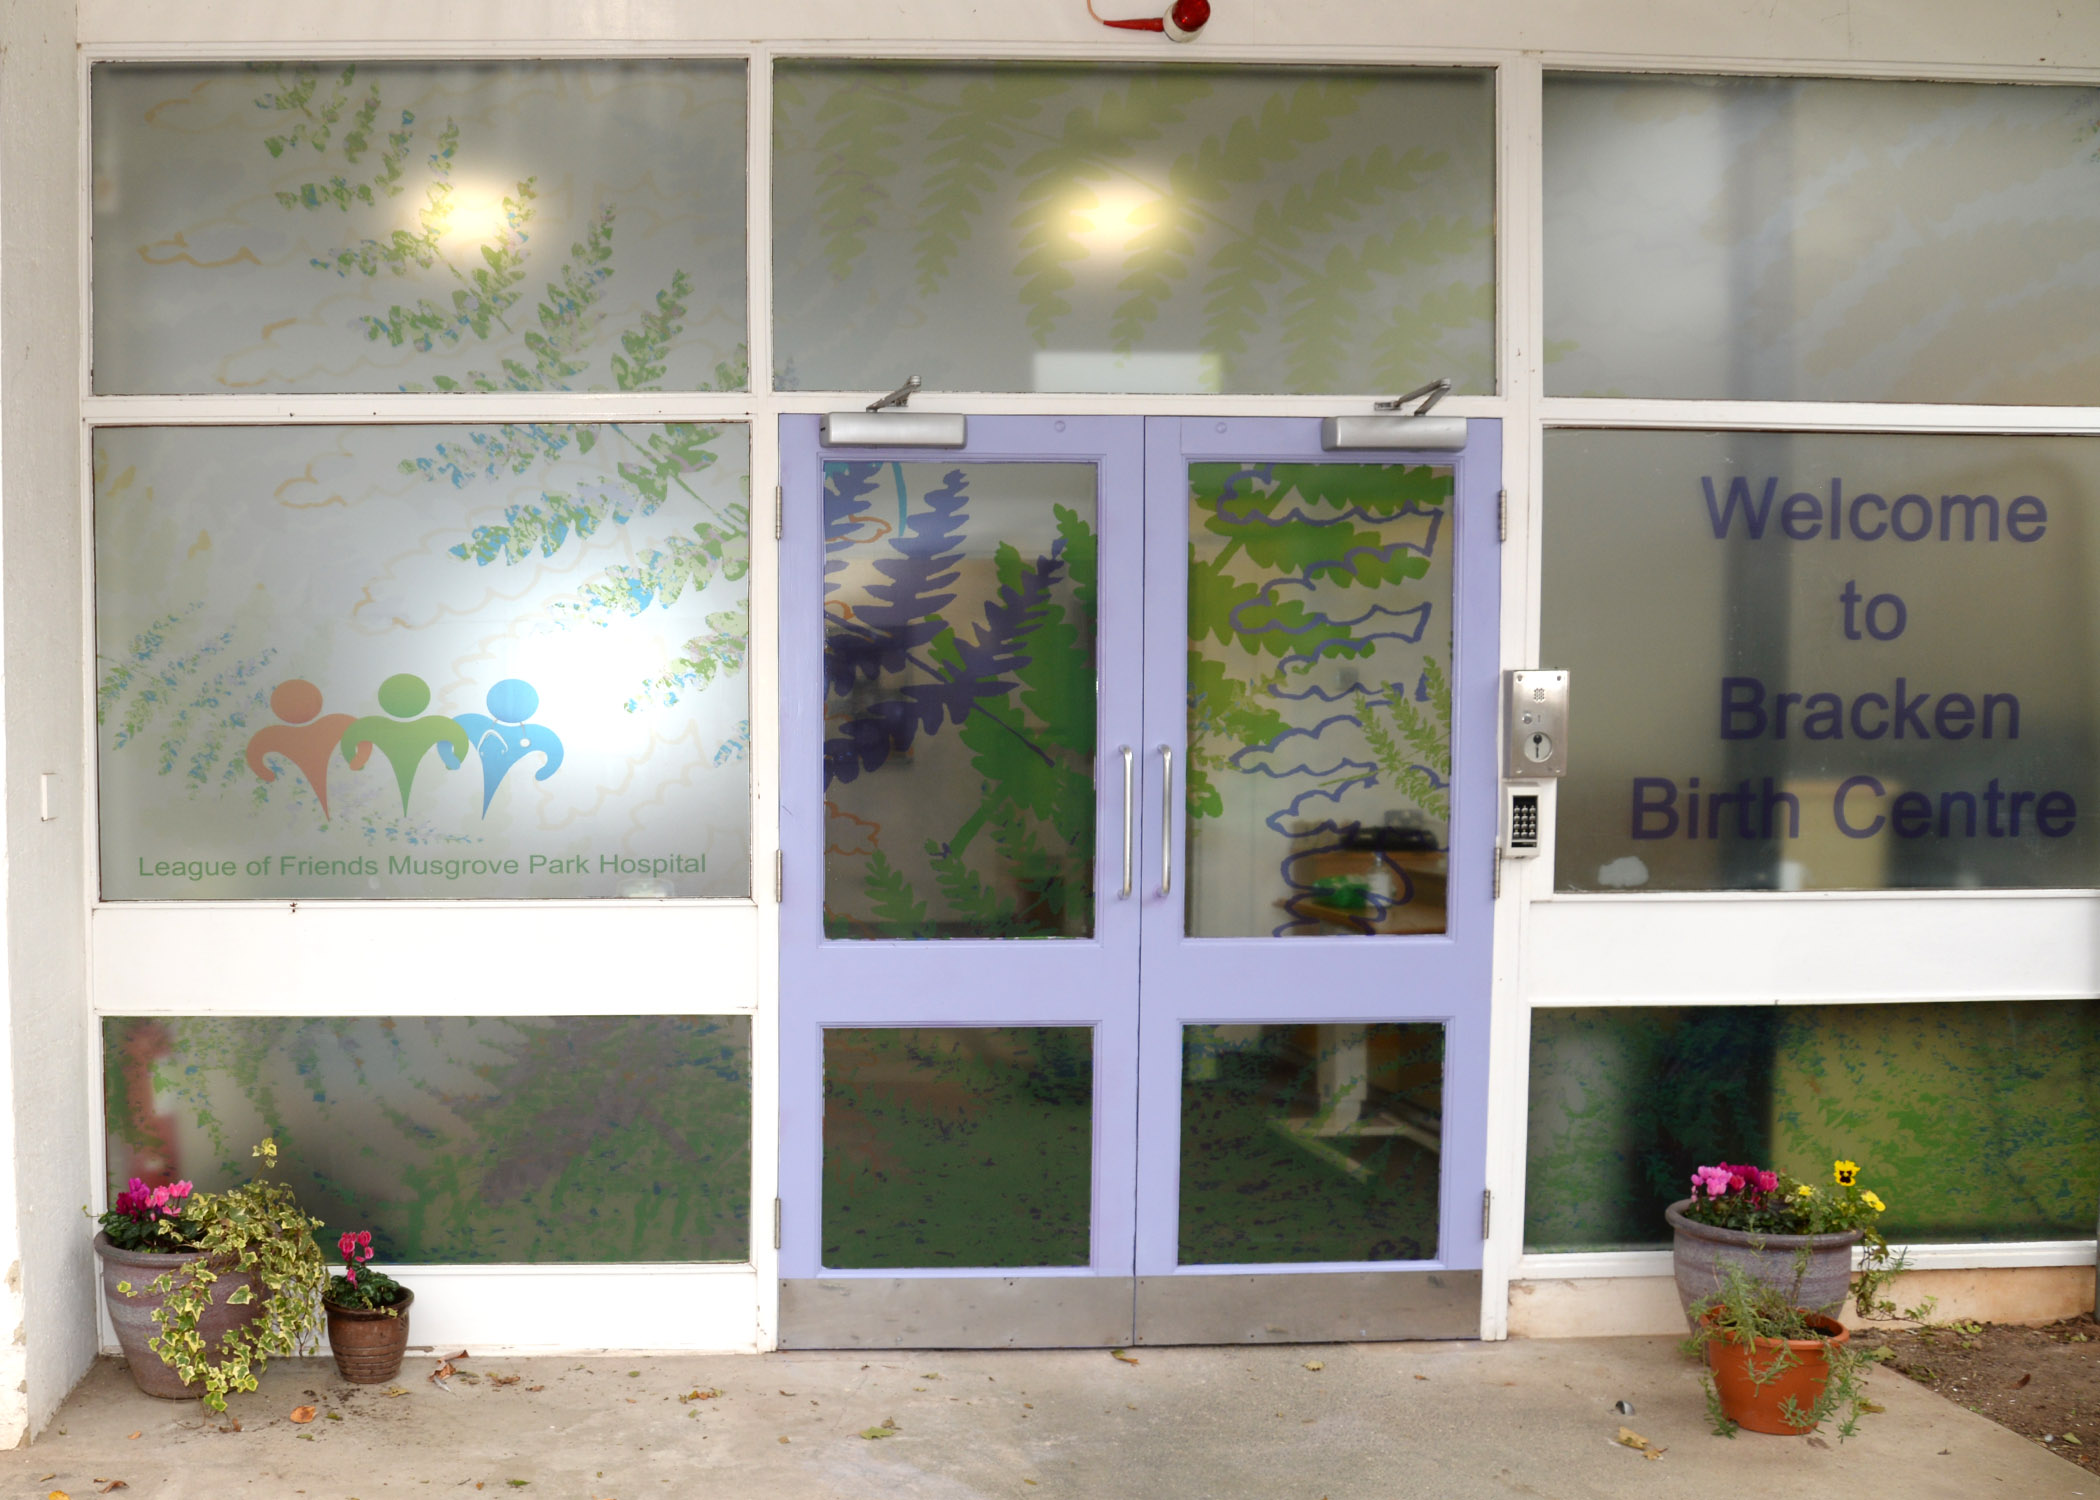 BRACKEN BIRTH CENTRE OPENS – A DREAM BECOMES REALITY!